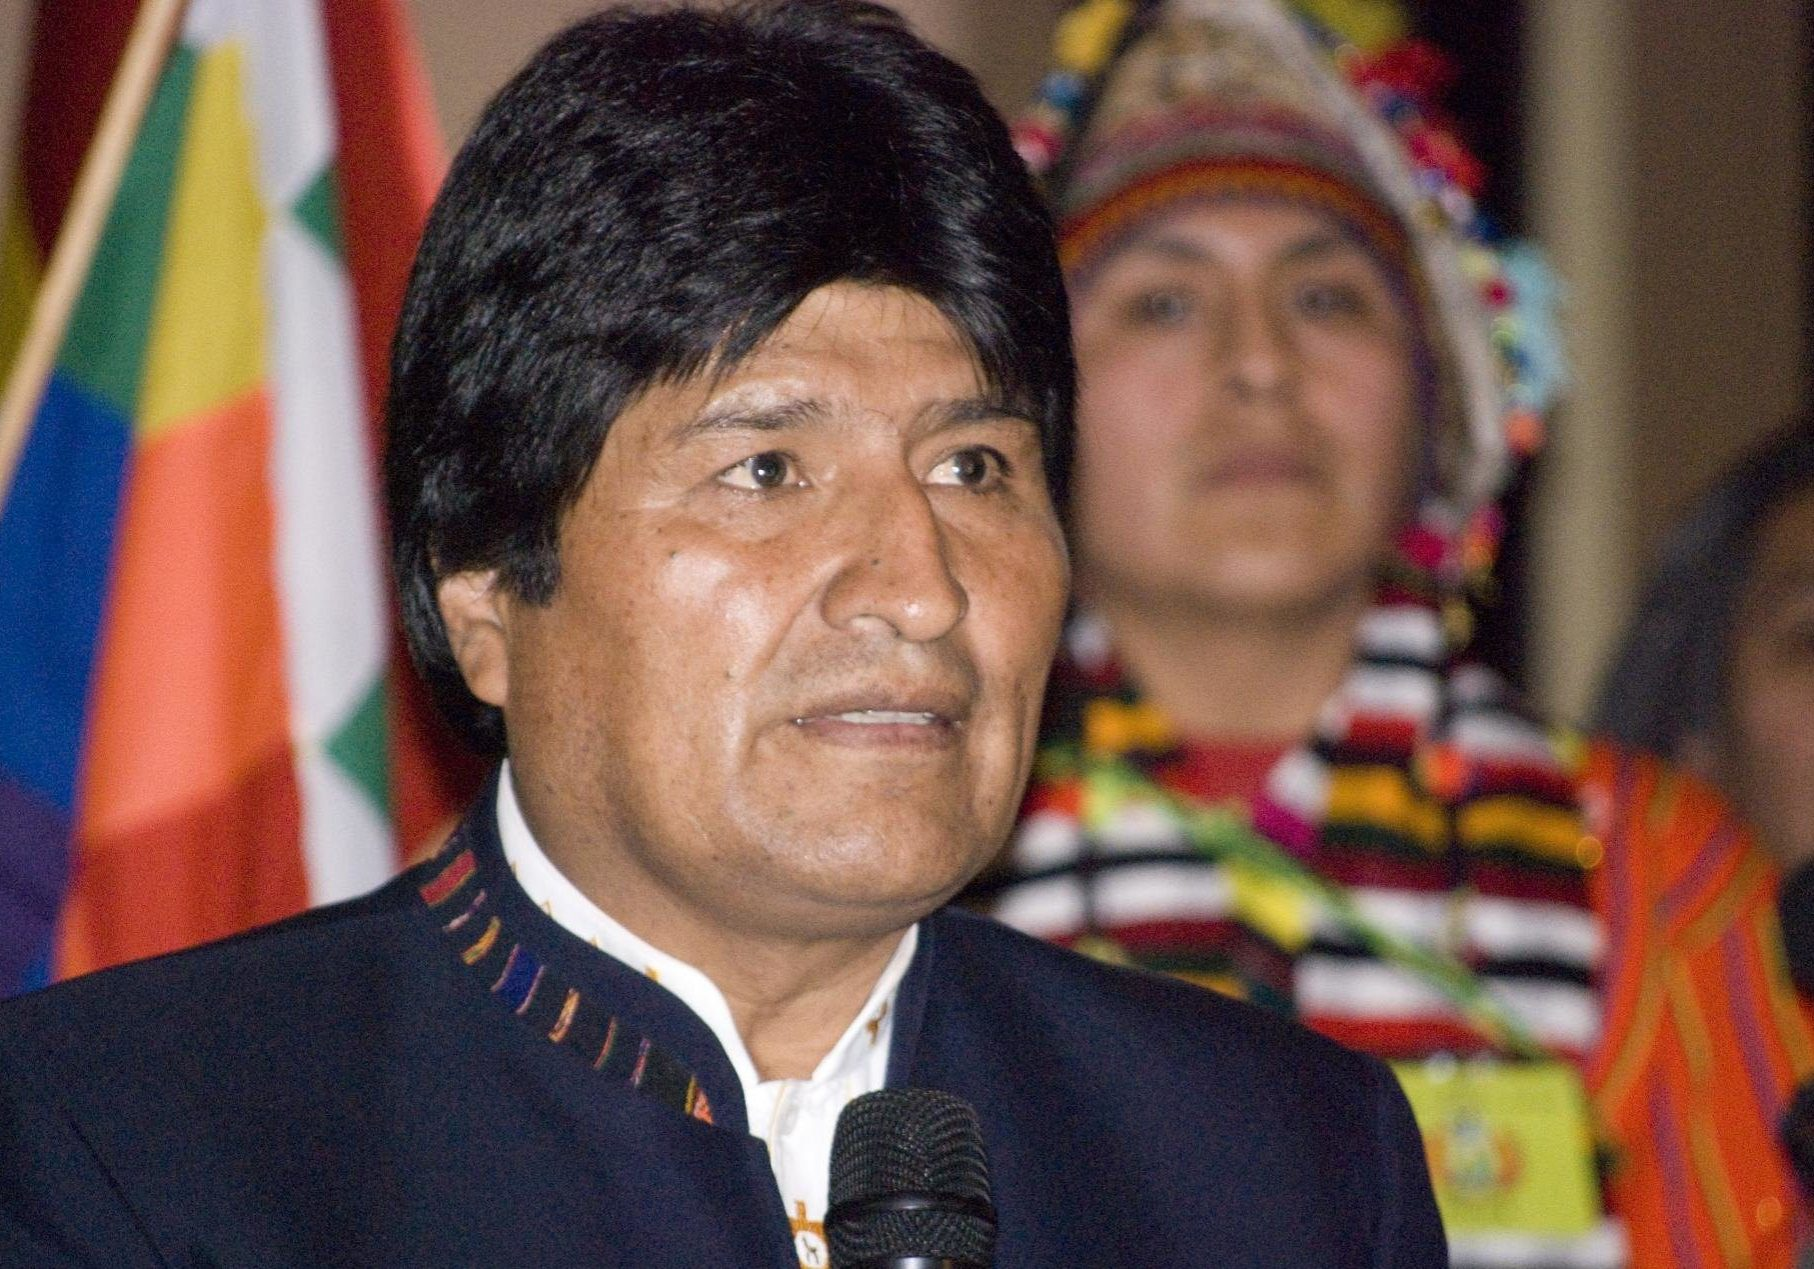 Bolivia's President Evo Morales, pictured here in 2009, has been accused of fraud in his bid to win an unprecedented fourth term. He has accused his opponents of plotting a coup. (Photo credit:  Sebastian Baryli/Flickr Creative Commons)